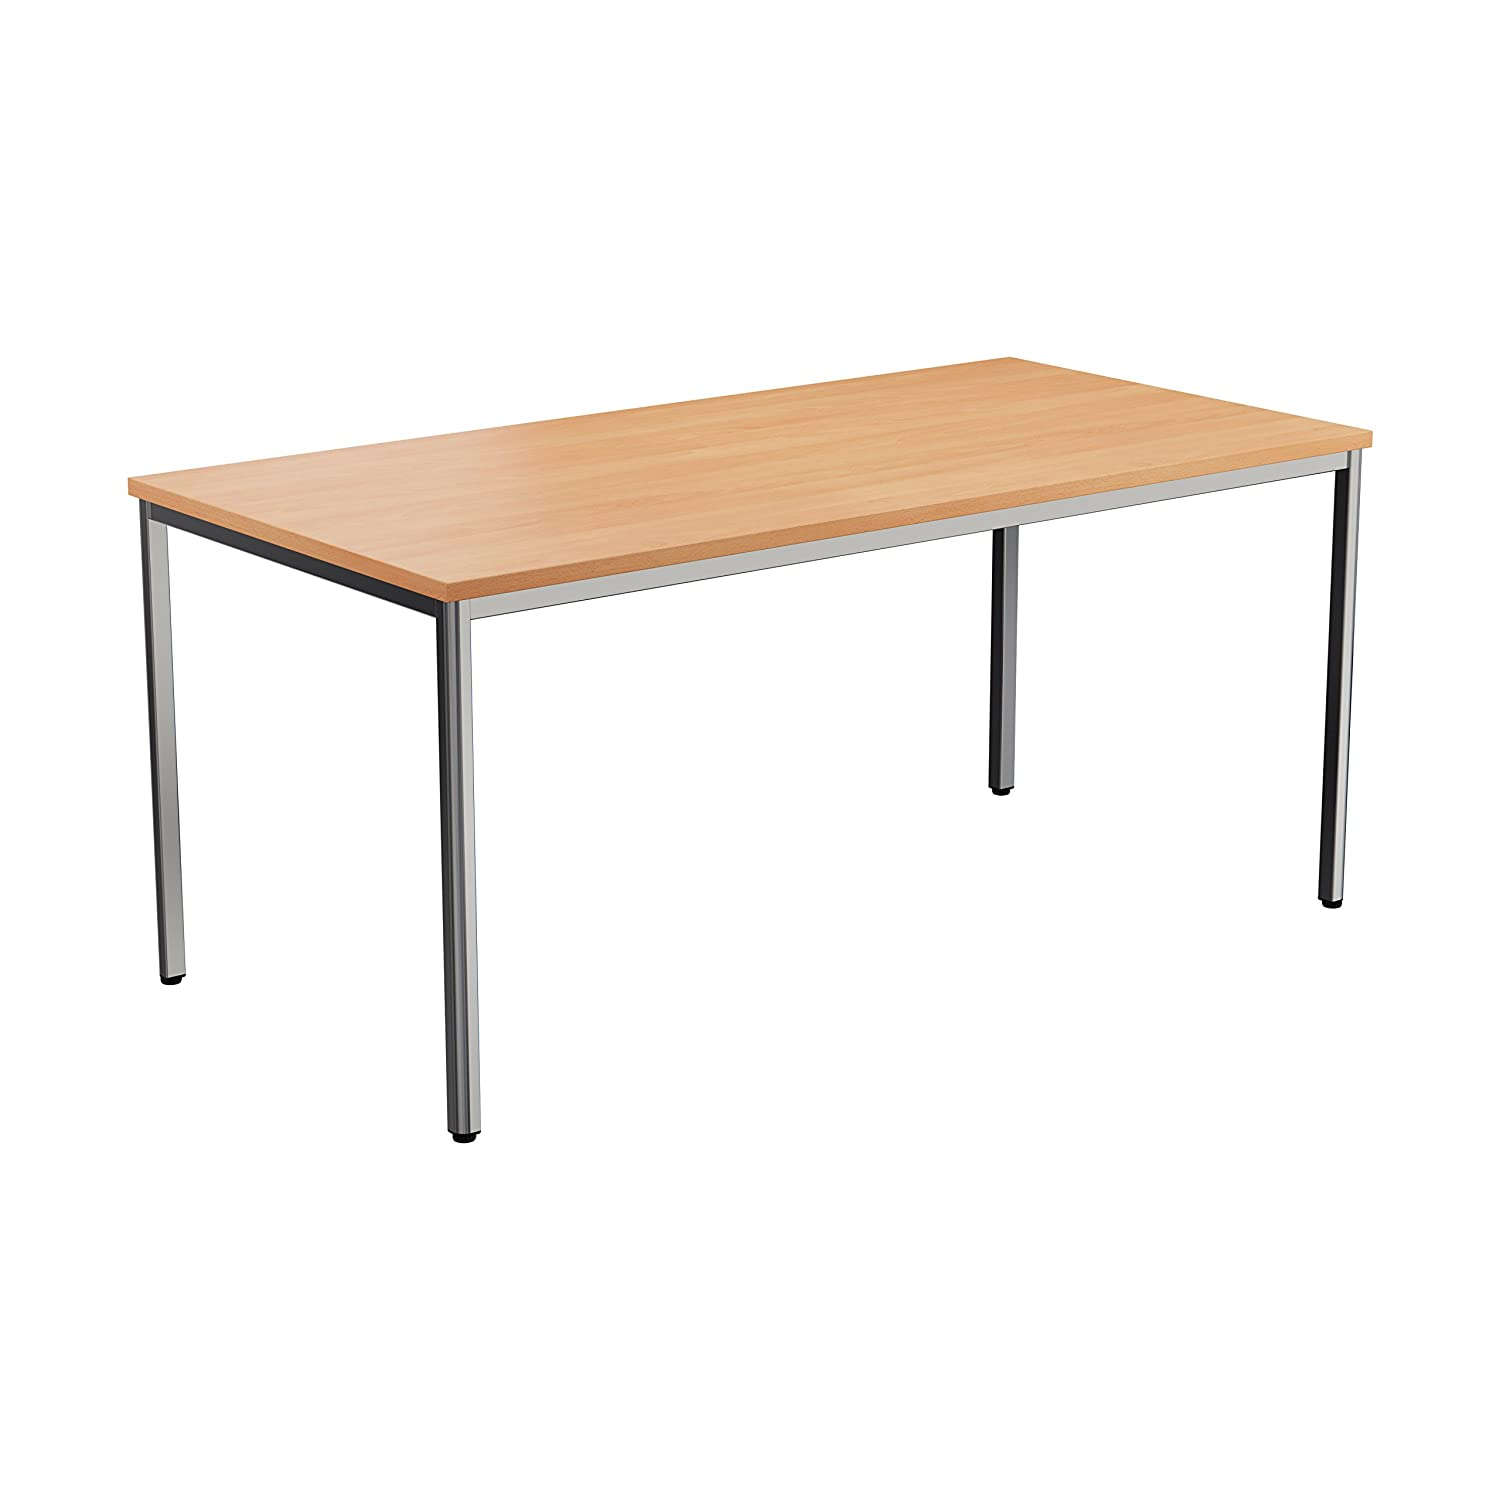 Office Hippo Multi-Purpose Rectangular Meeting Table, Polished Chrome Frame, Oak Top, 160 cm TC Group OHD0102OK